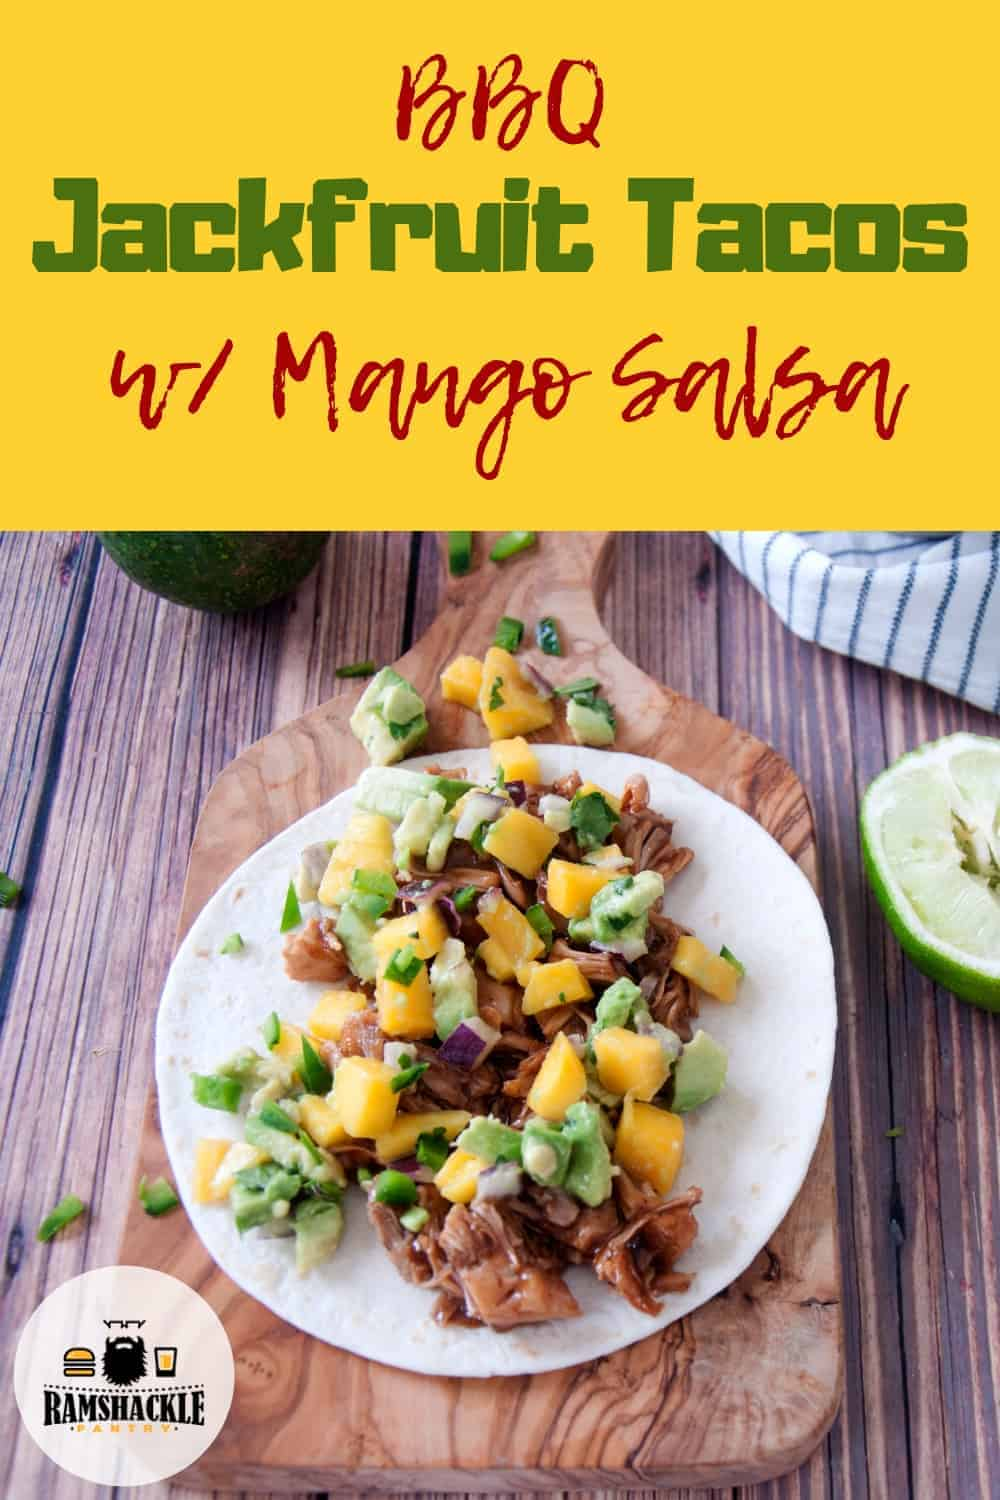 Tastiest BBQ Jackfruit Tacos and this Mango Salsa tops it off perfectly! This really is a great vegetarian meal and really is so easy to make! #ramshacklepantry #meatlessmonday #vegetarian #jackfruit